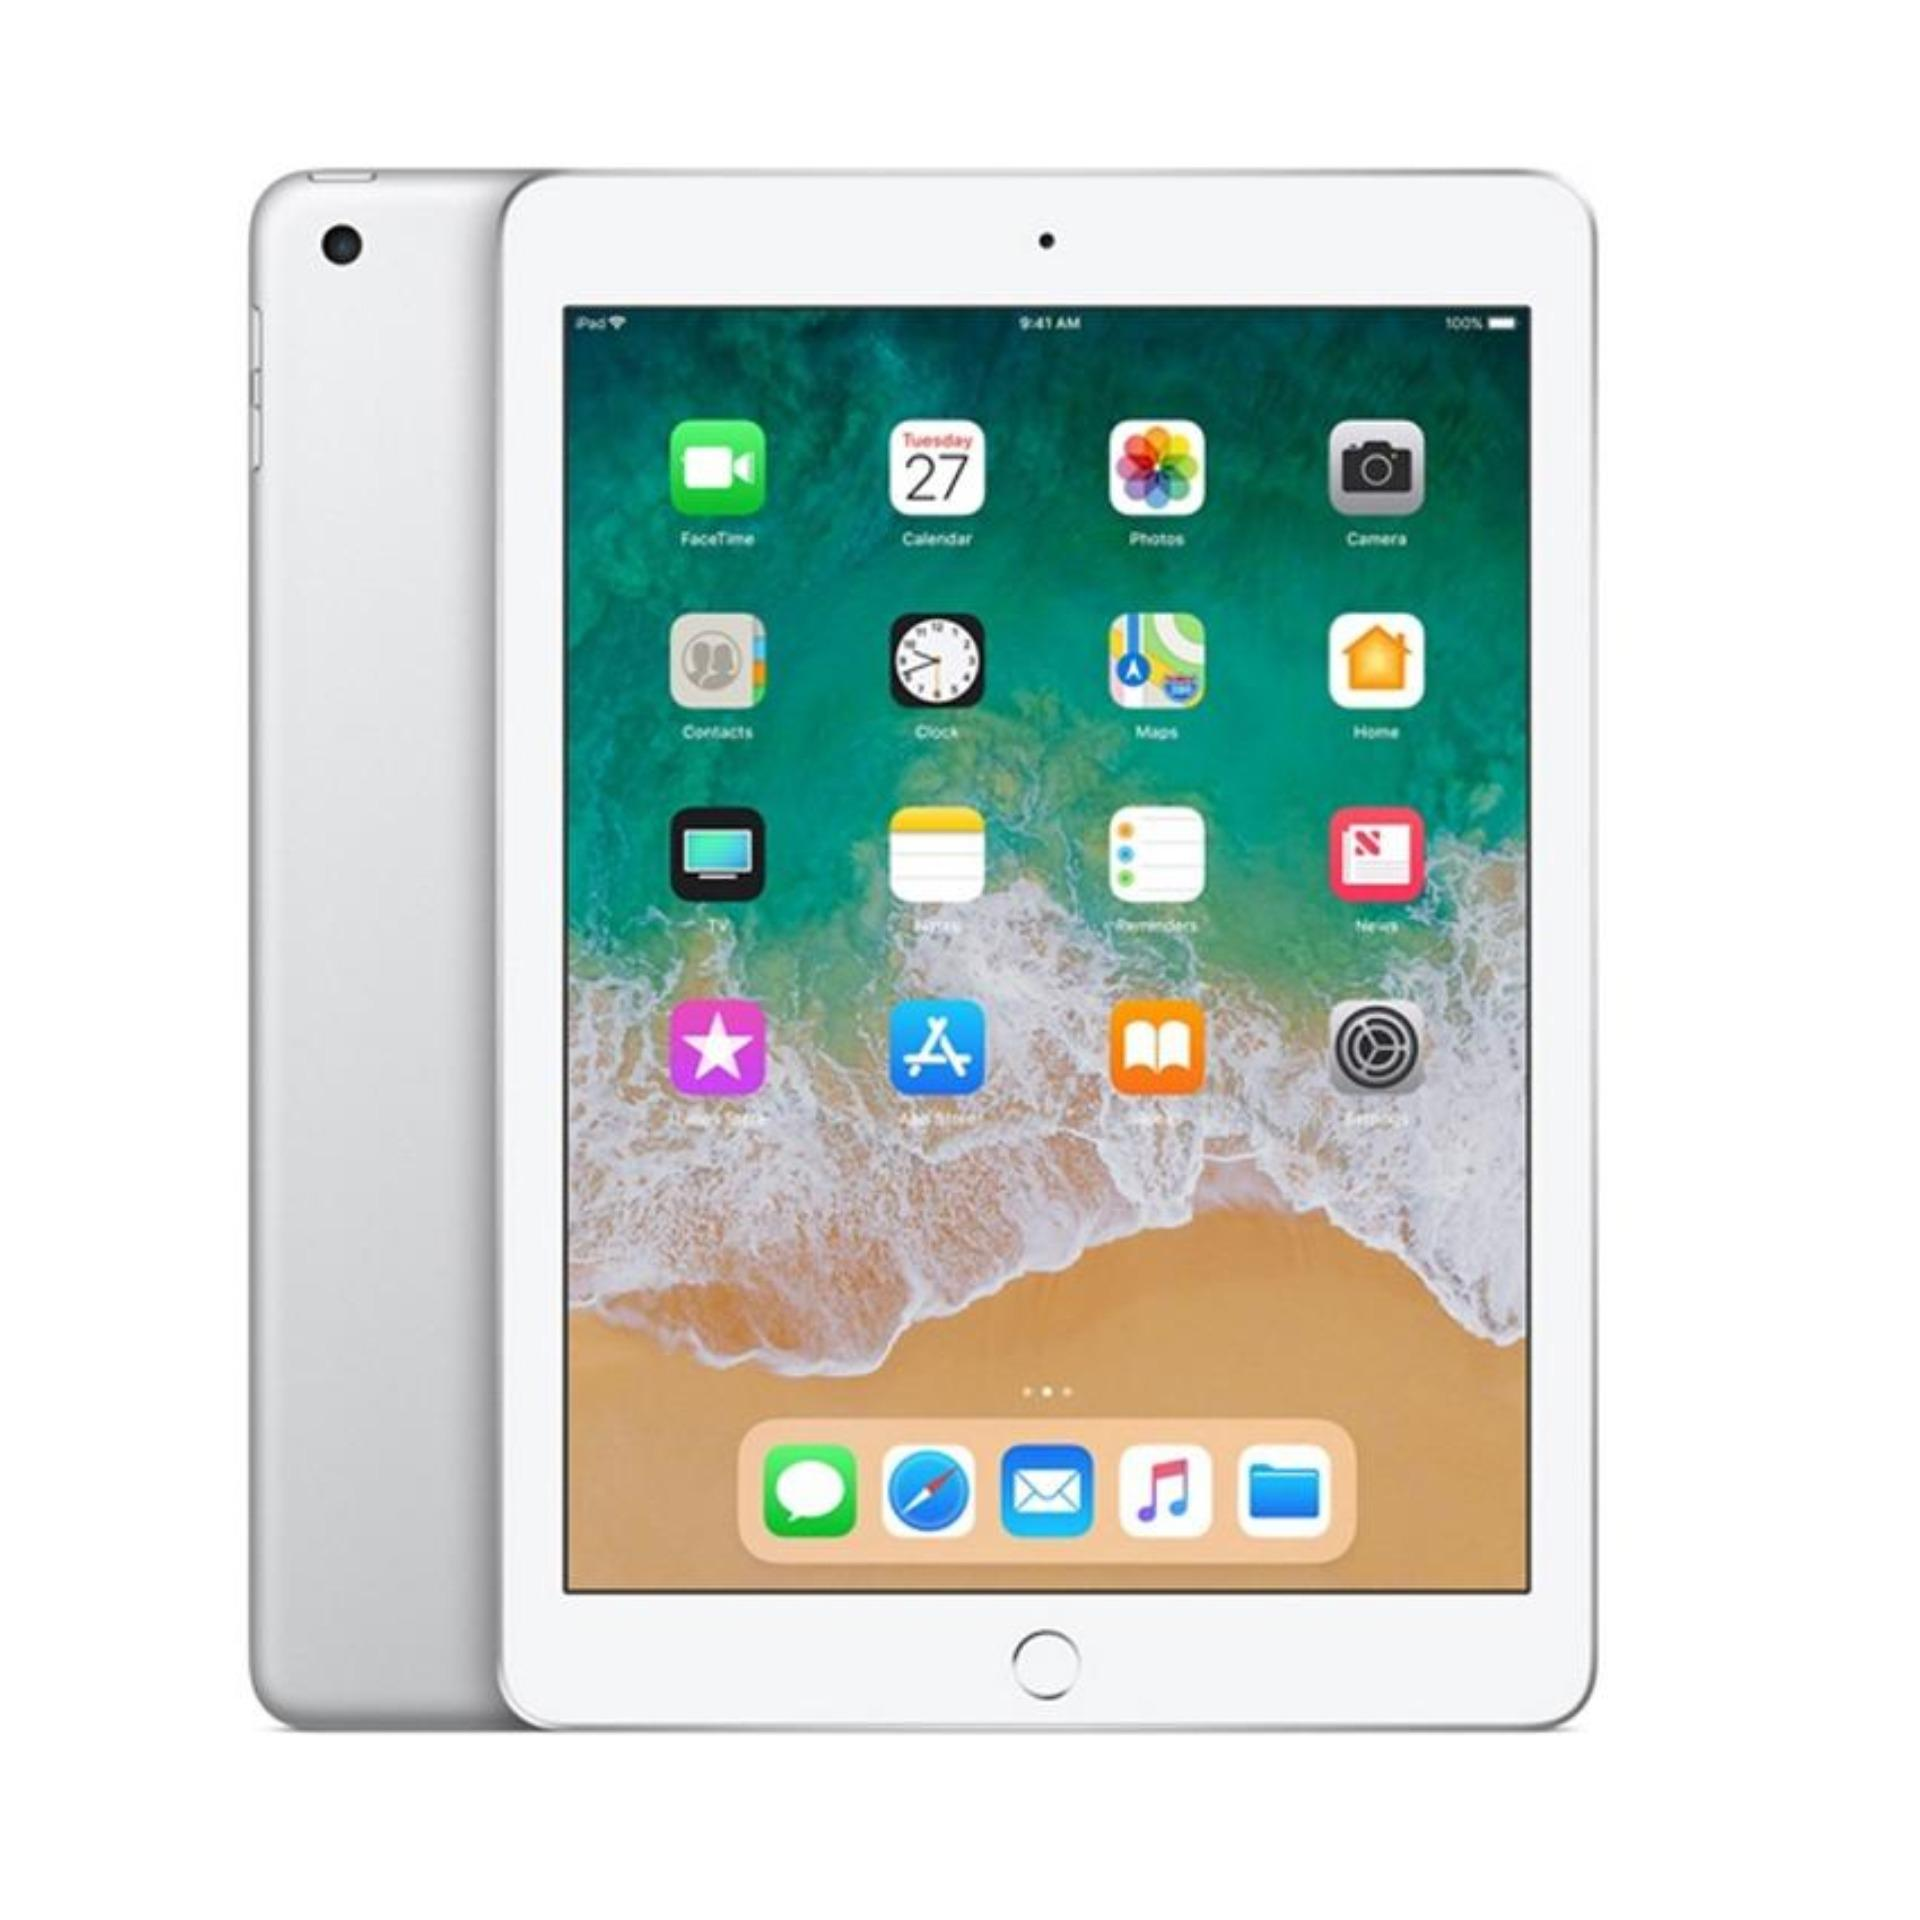 Apple iPad 2018 Wi-Fi + Cellular 128GB